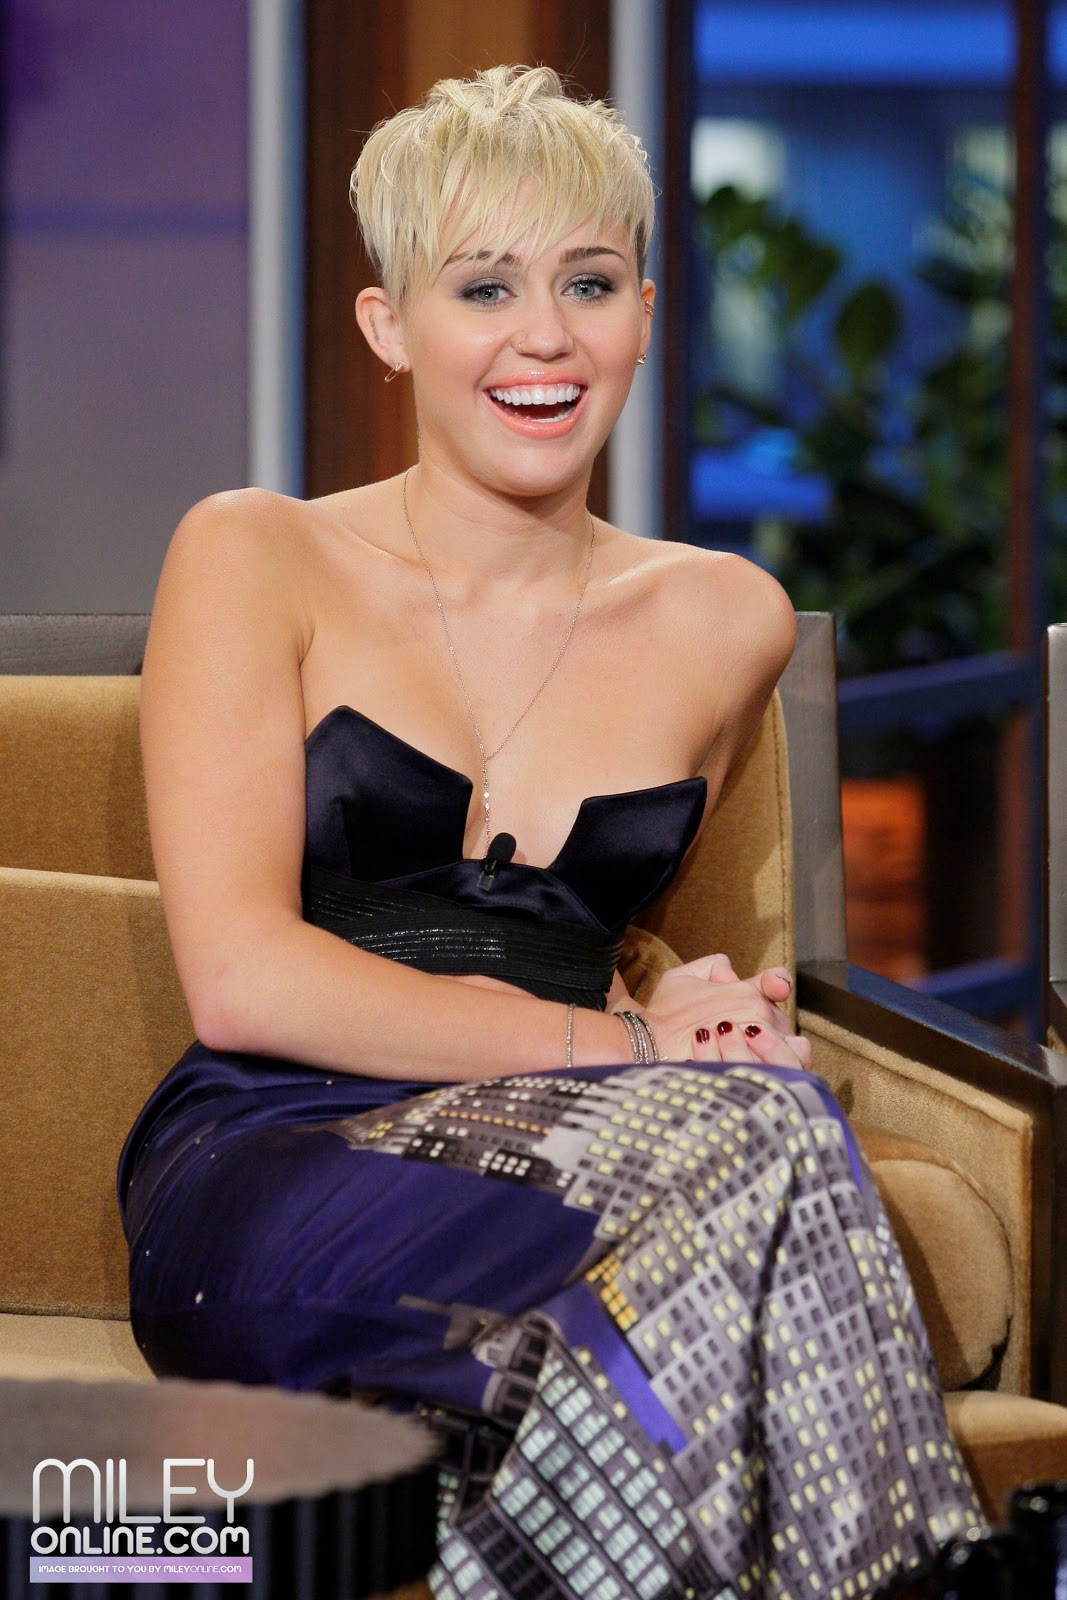 Miley Cyrus Great Photos on The Tonight Show with Jay Leno